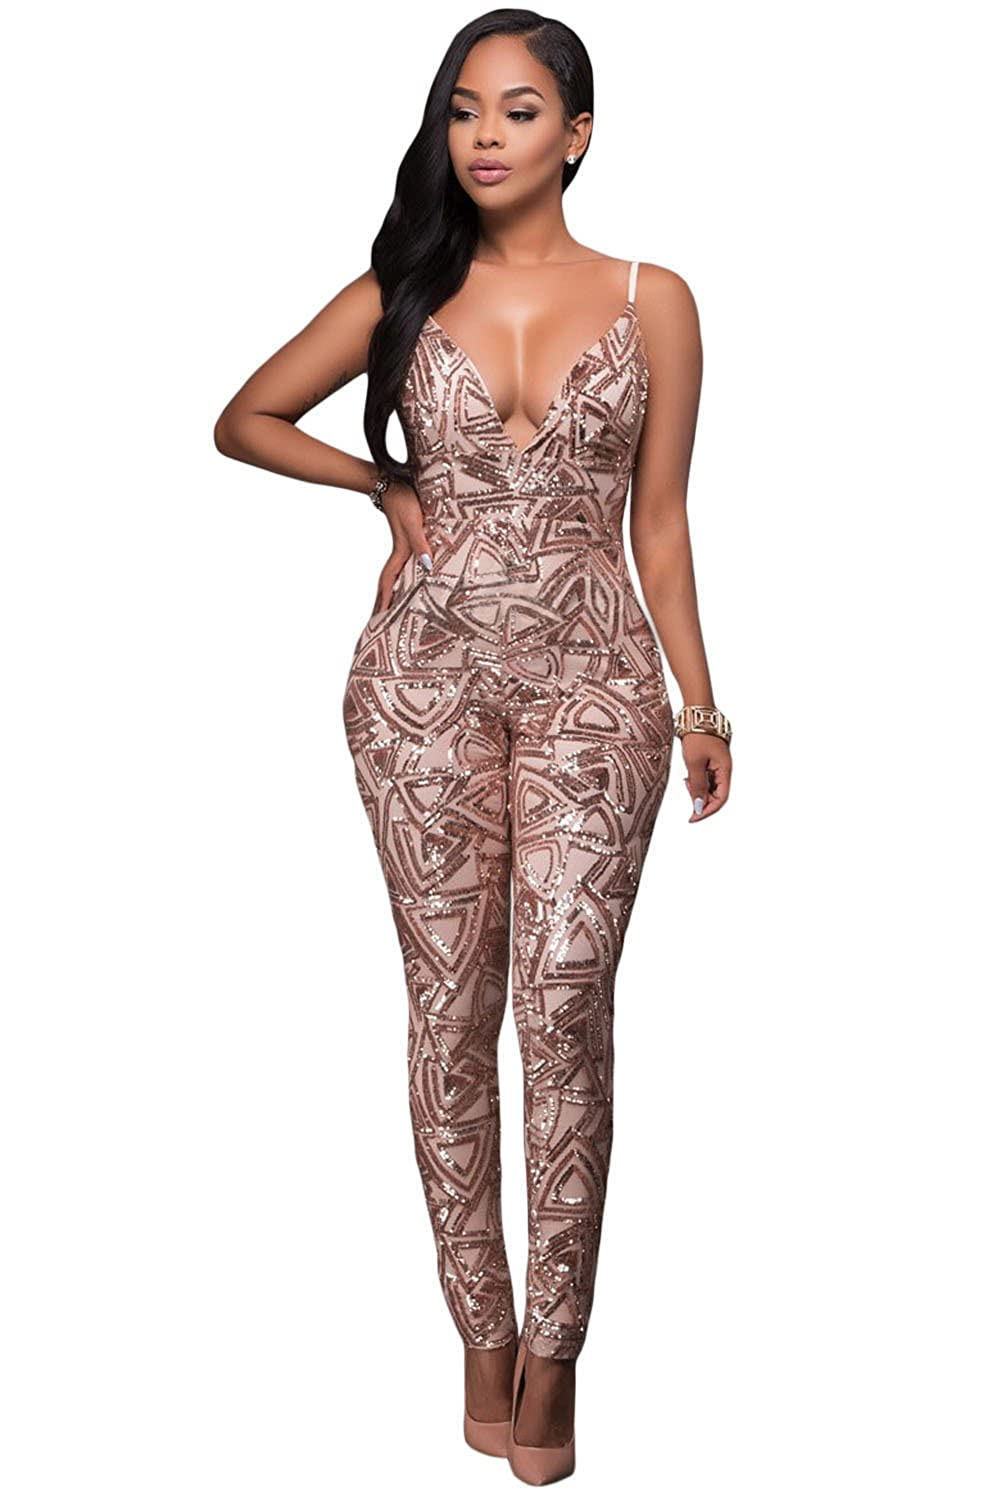 Lucklovell Women Sexy Rose Gold Sequins Bare Back Jumpsuit